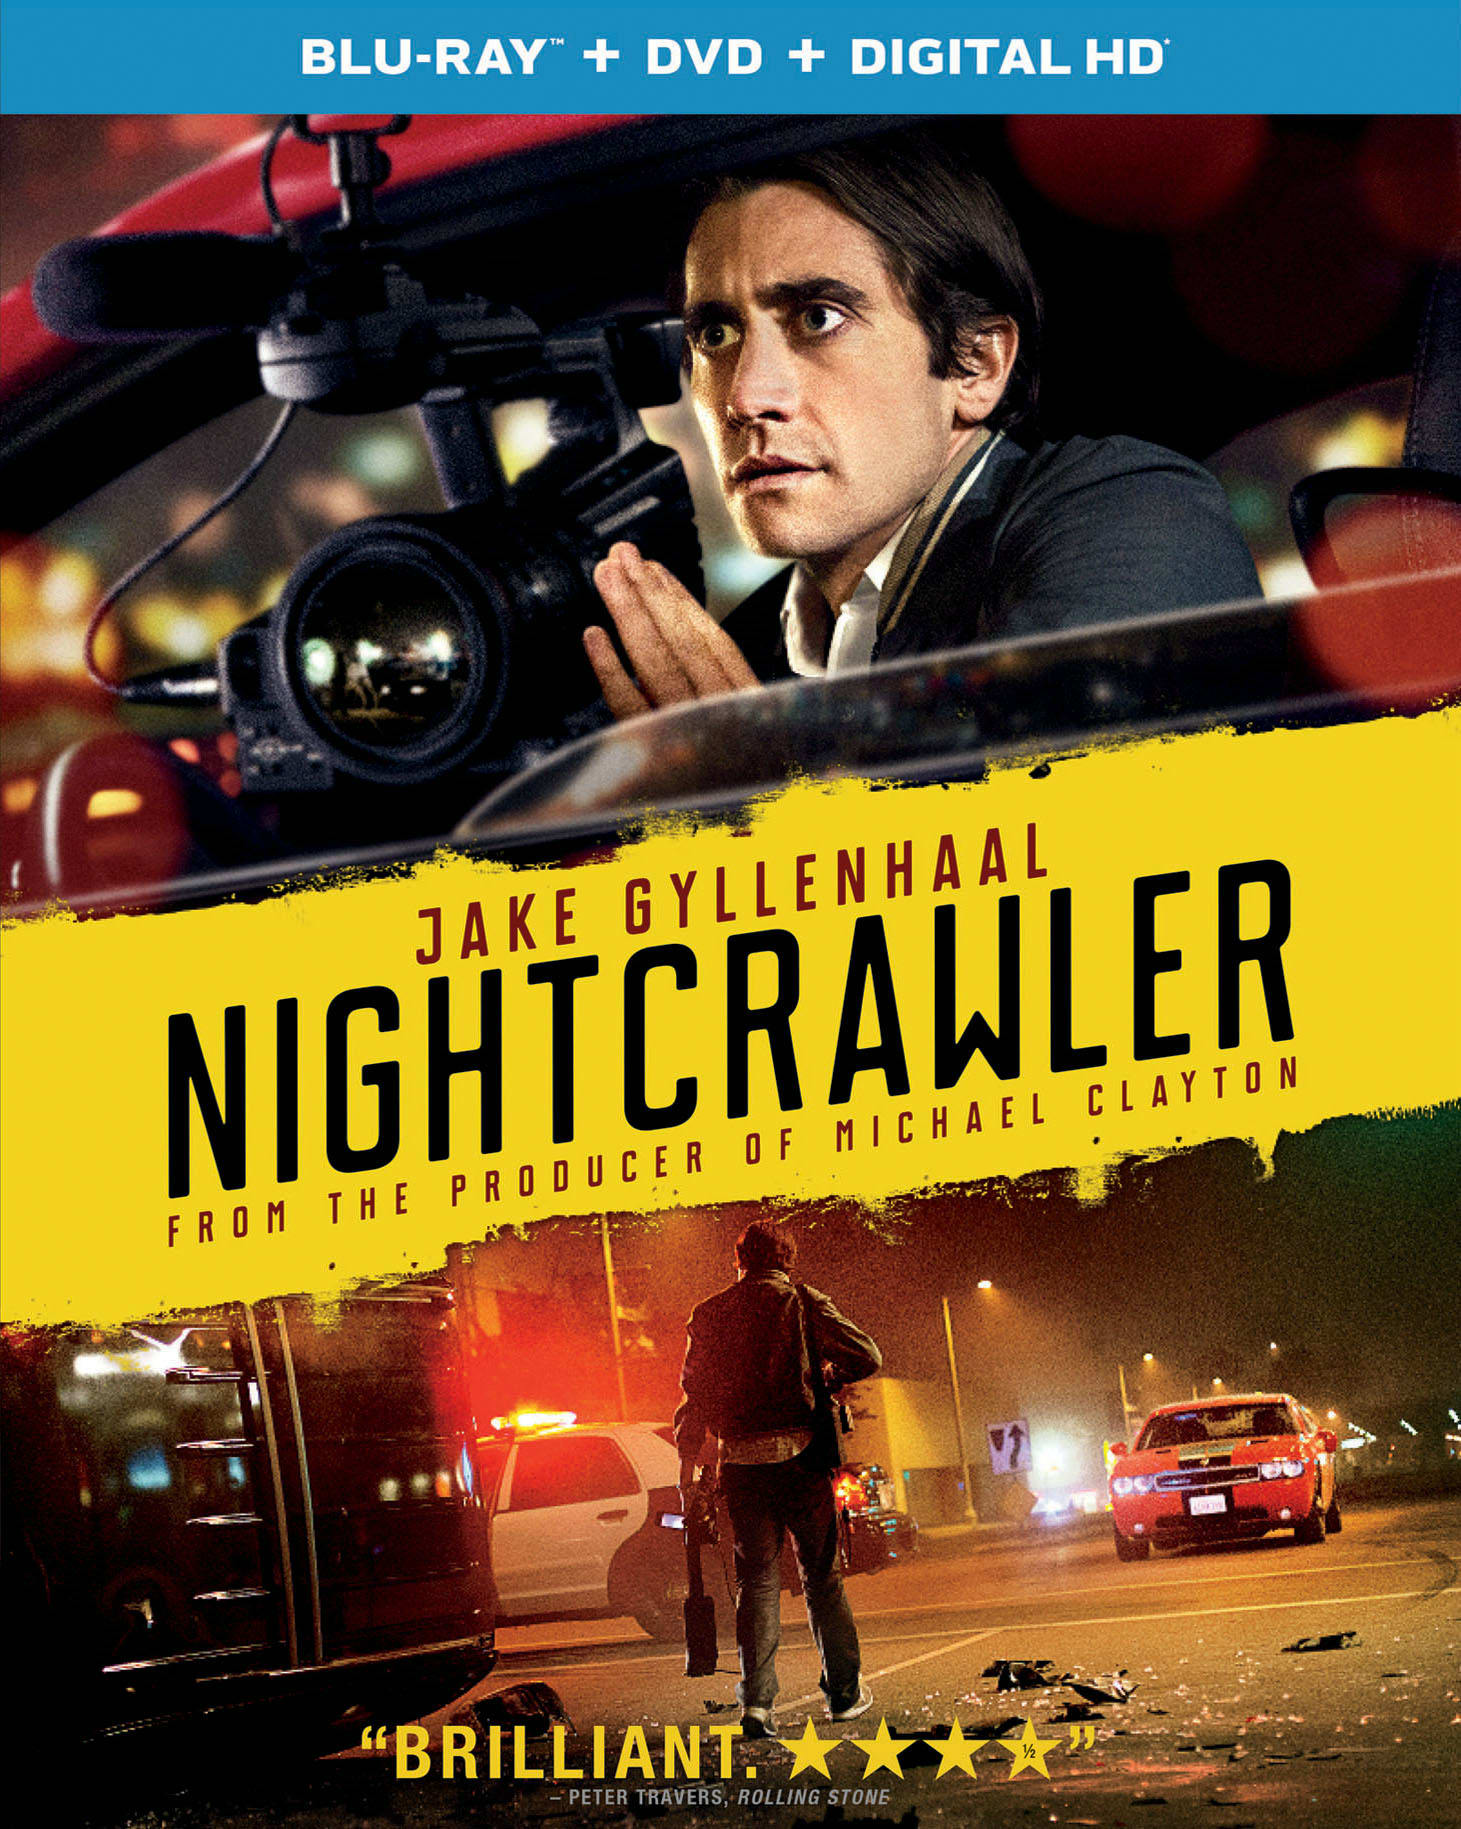 Nightcrawler (DVD + Digital) [Blu-ray]